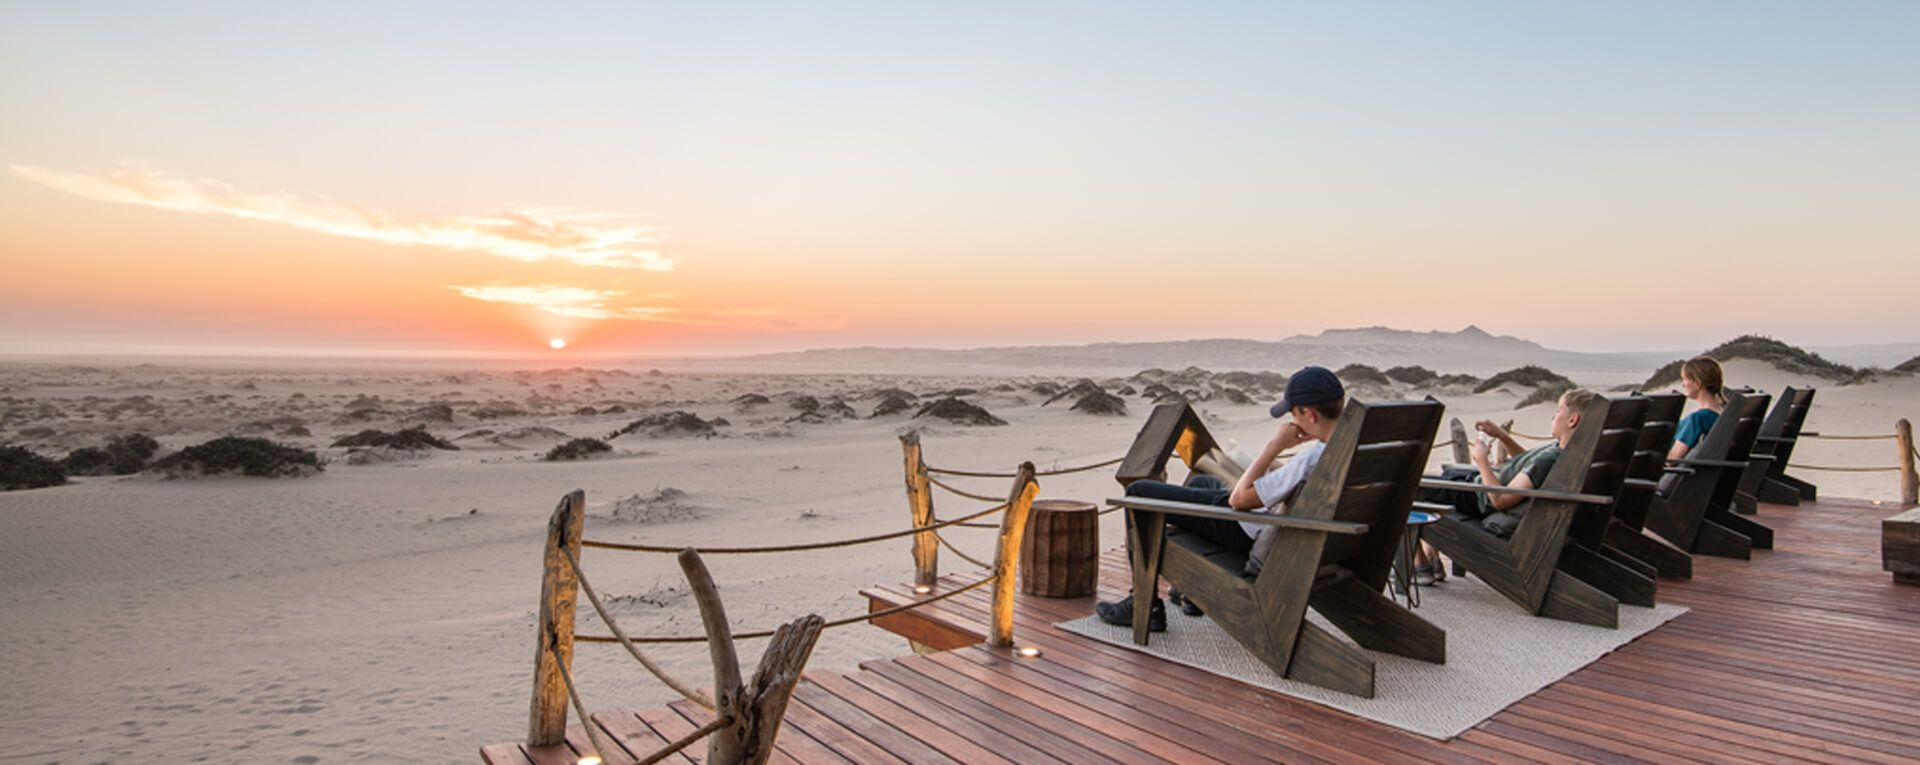 Shipwreck Lodge, Skeleton Coast